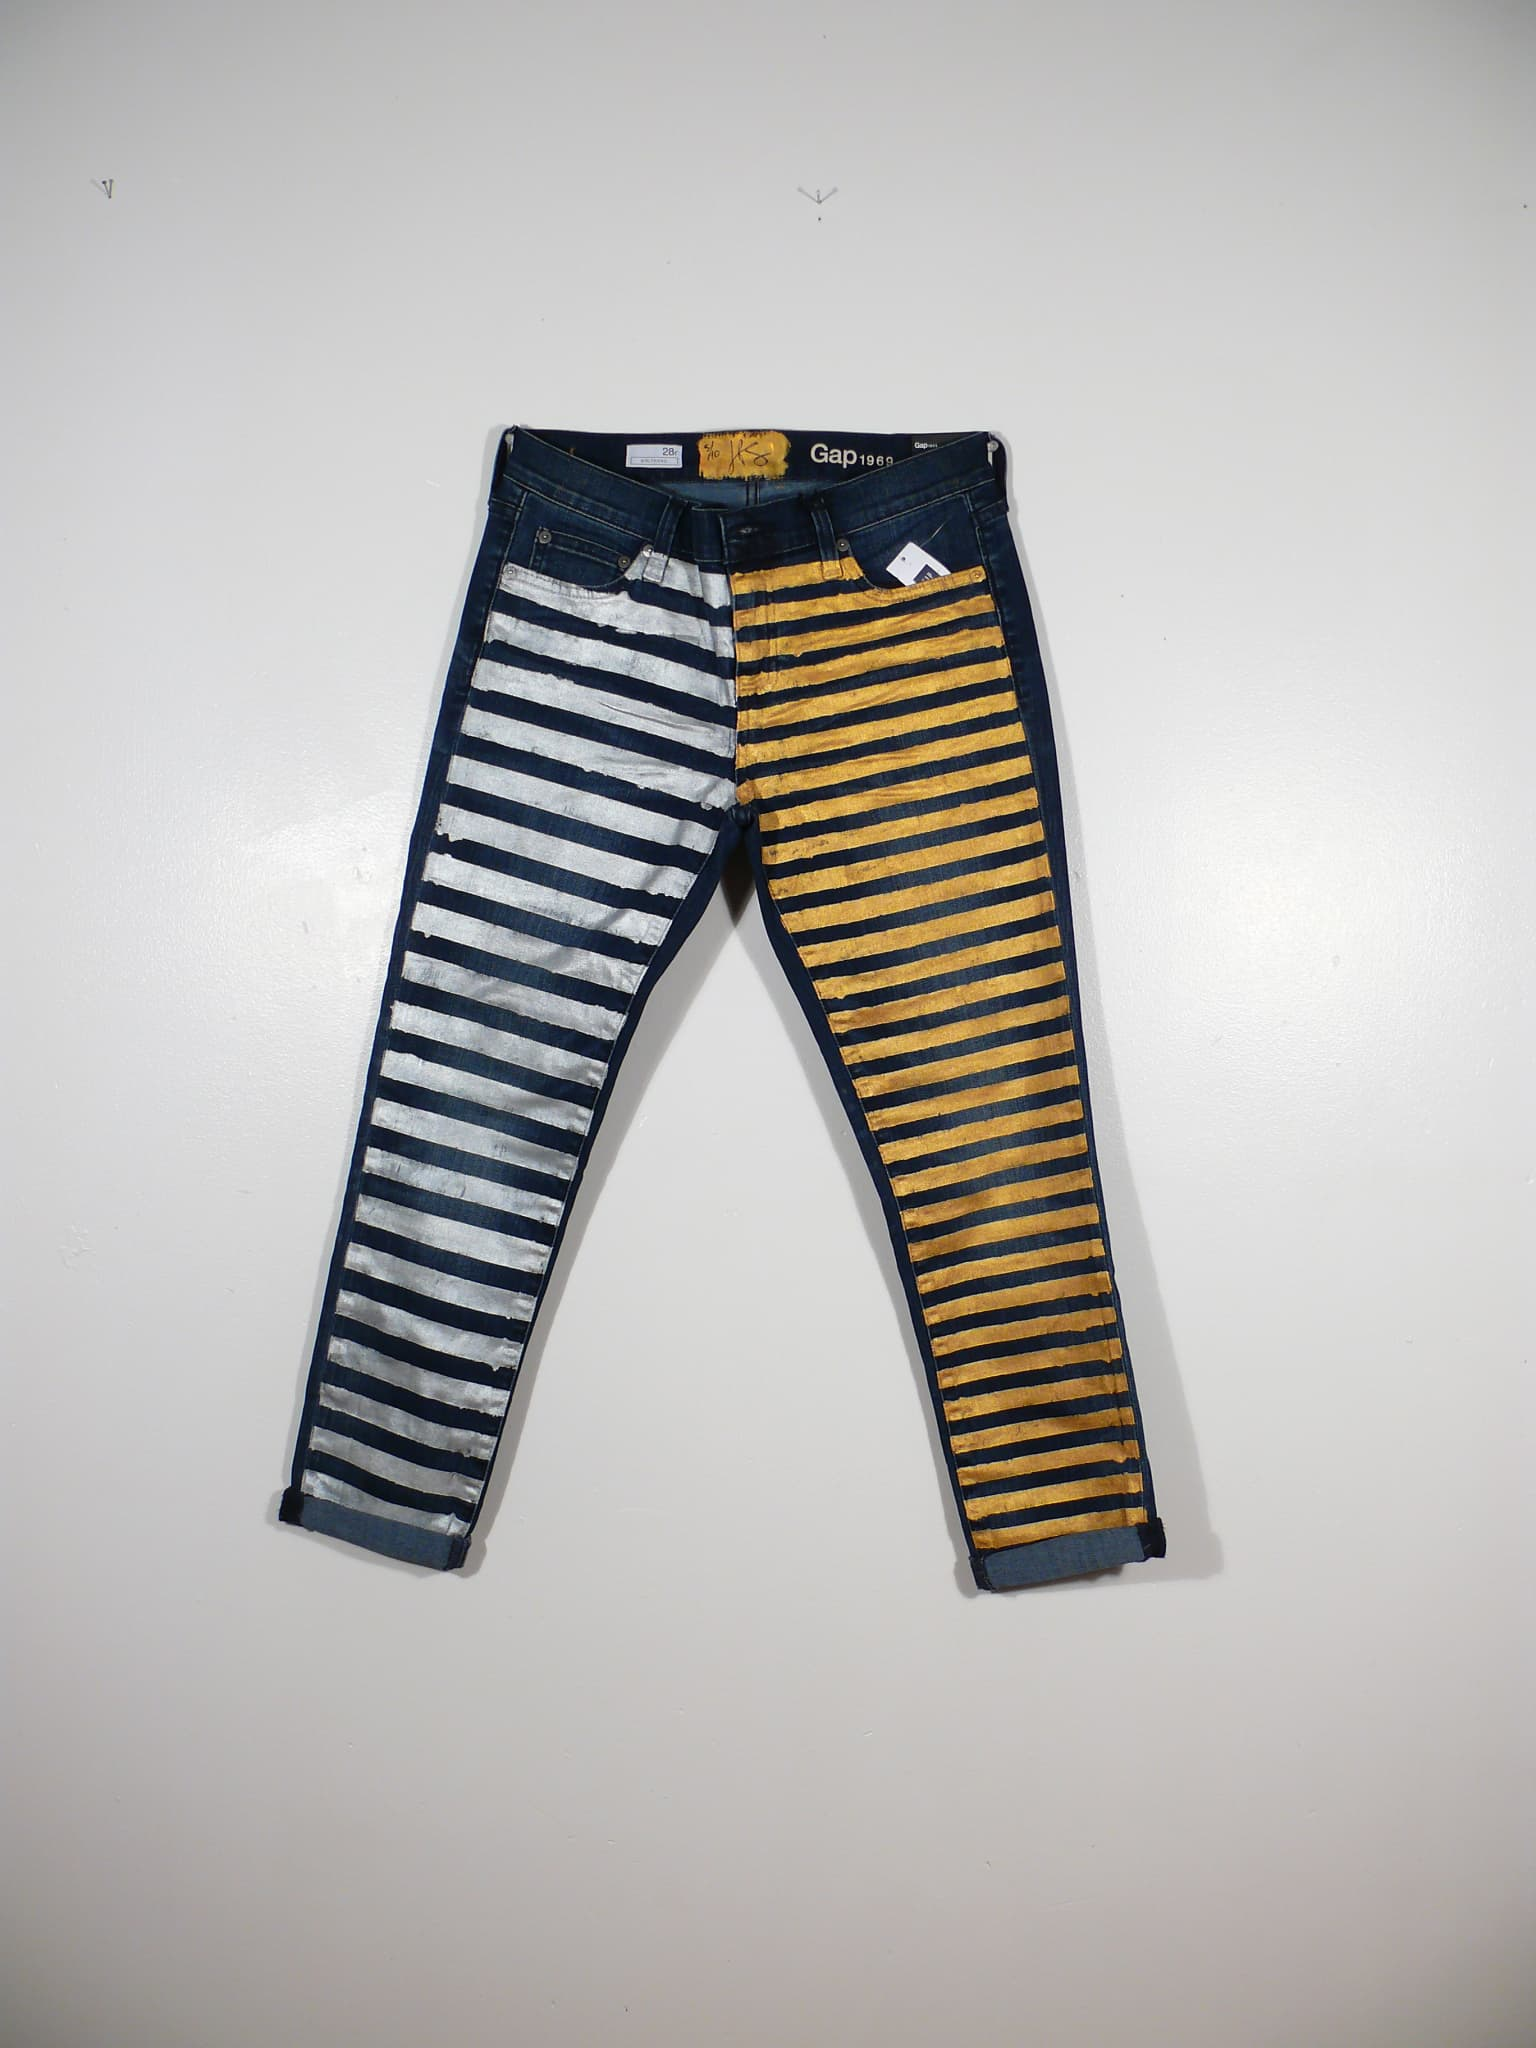 Bespoke Jeans for The Gap